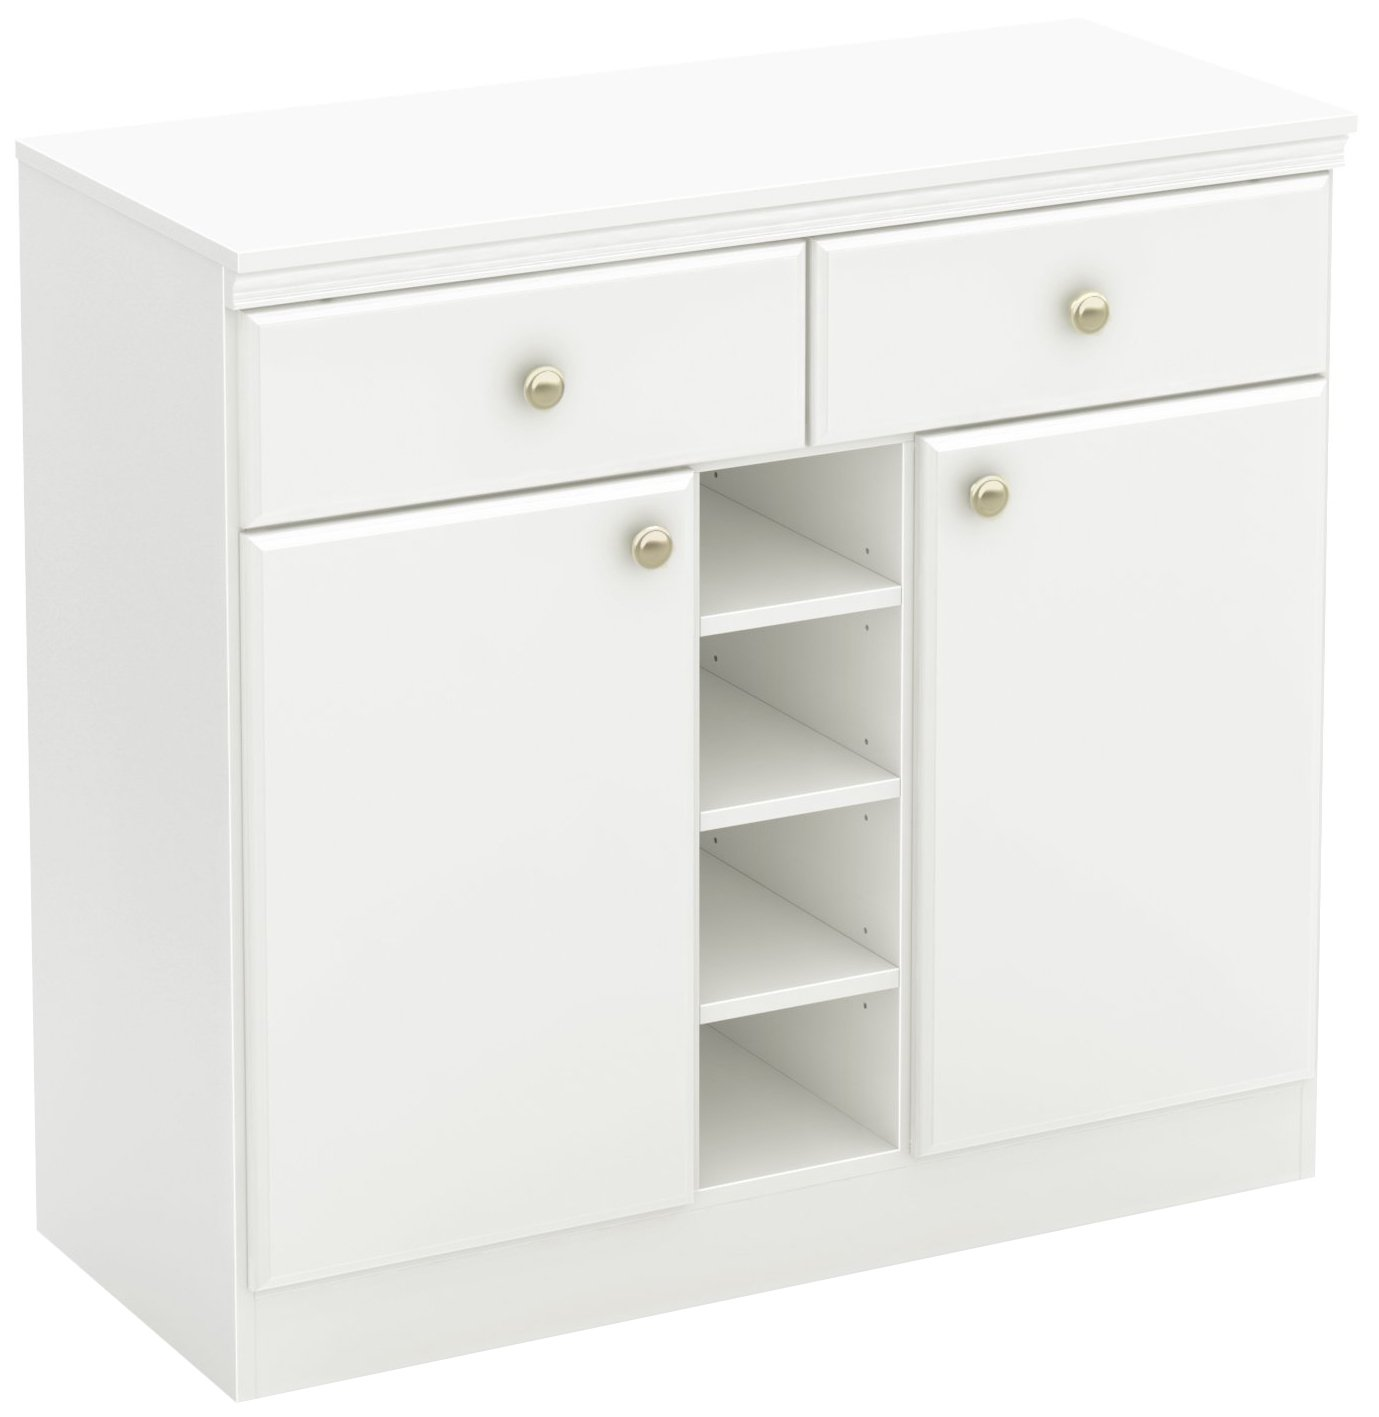 South Shore 7260770 2-Door Storage Sideboard with Drawers, Pure White